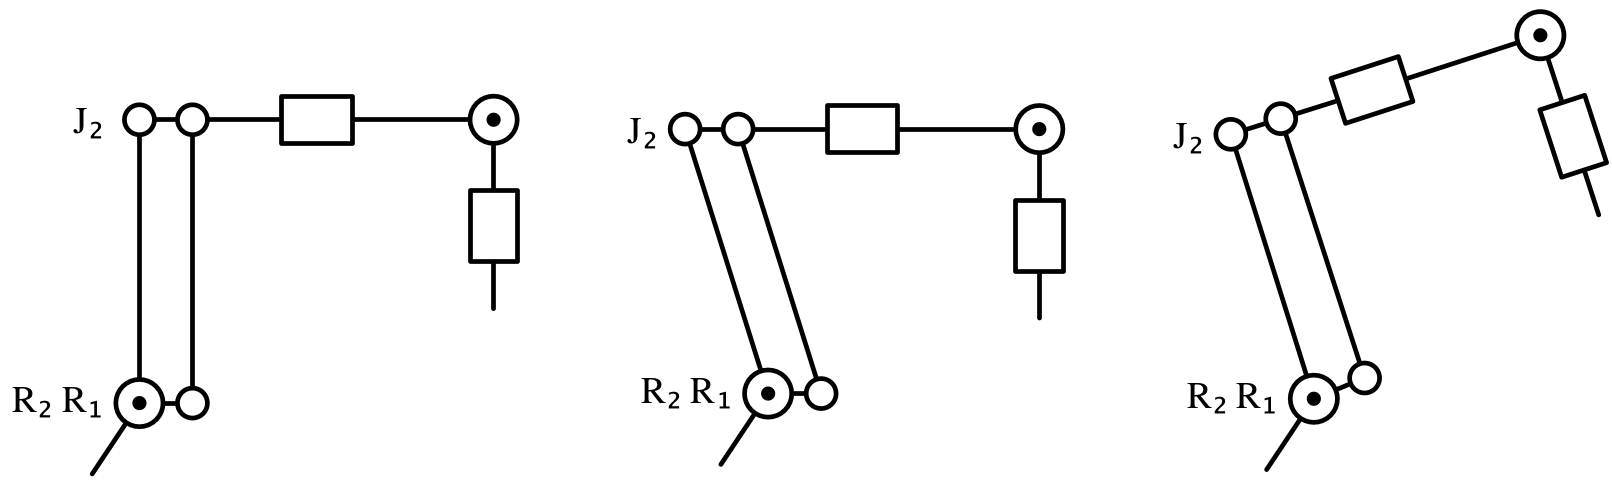 sr_geometry_kinematic_coupling